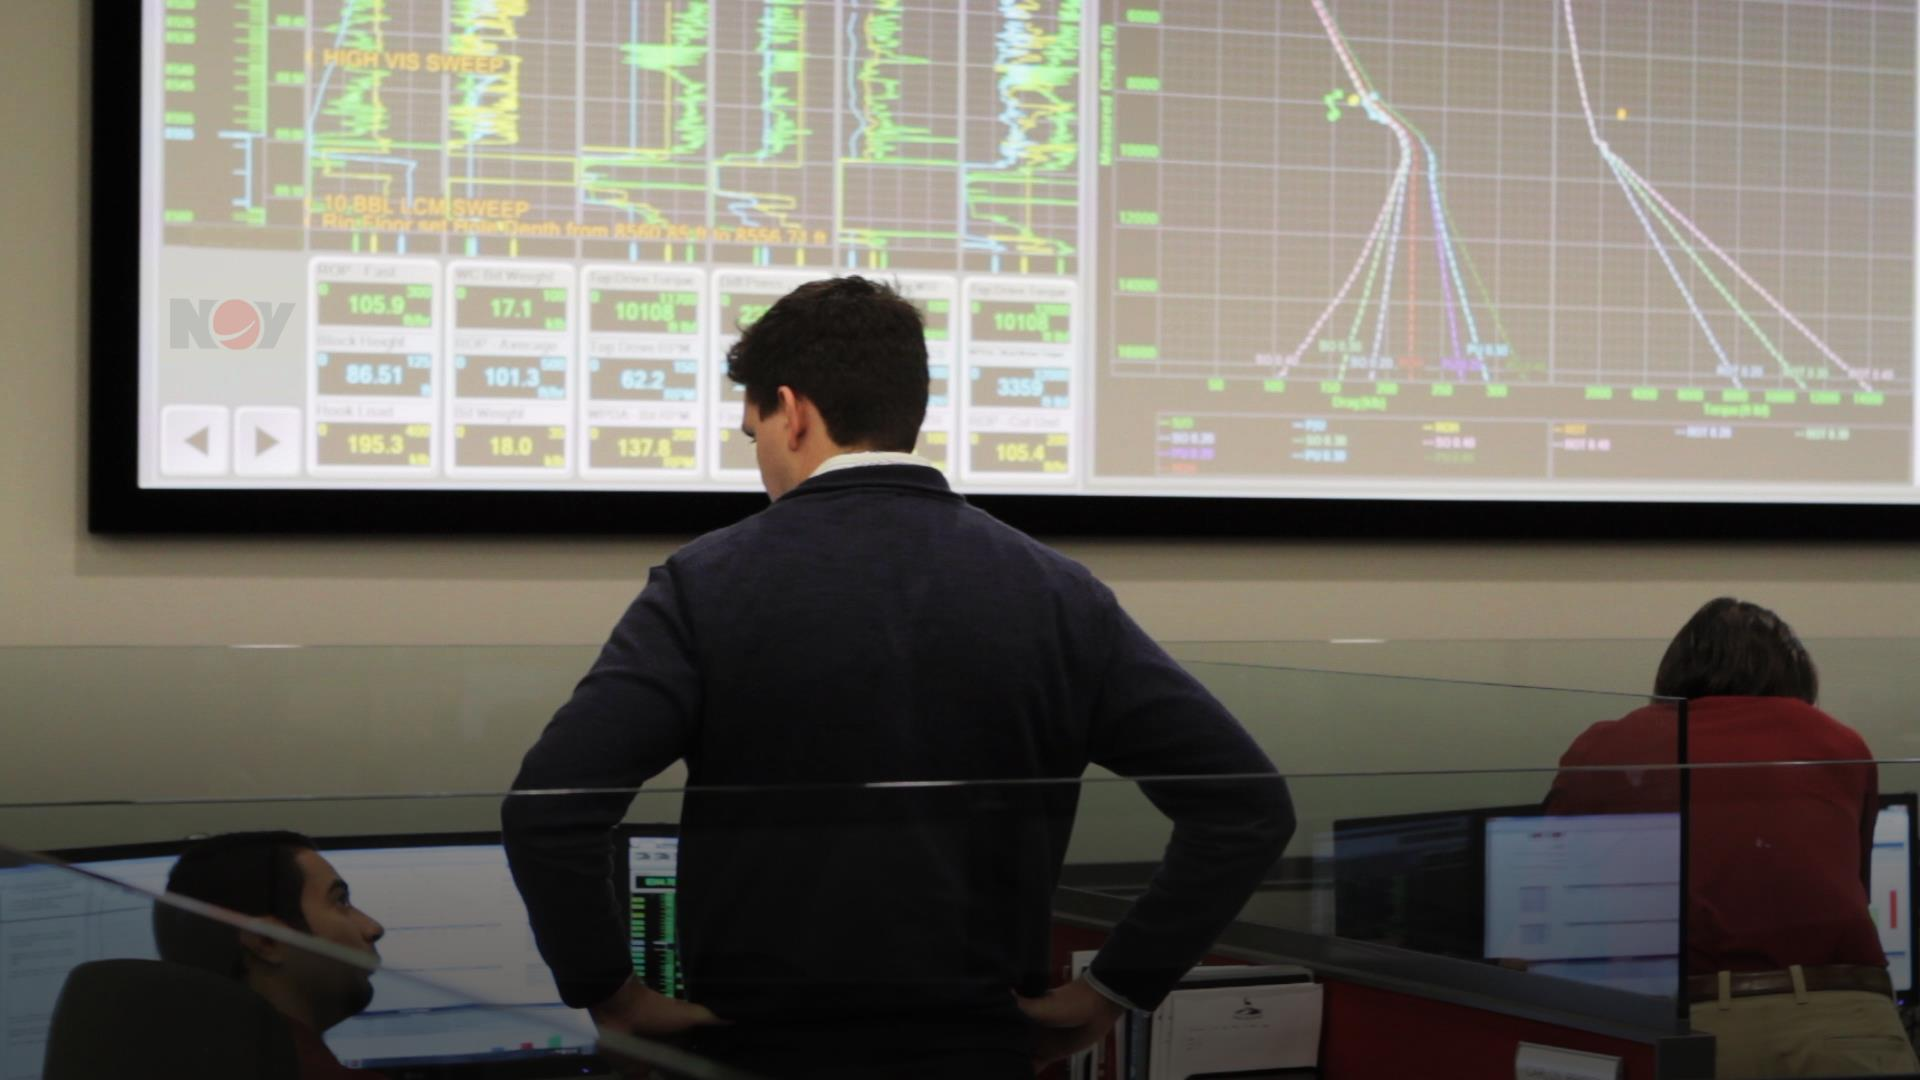 NOV Employees working in the real time technology center